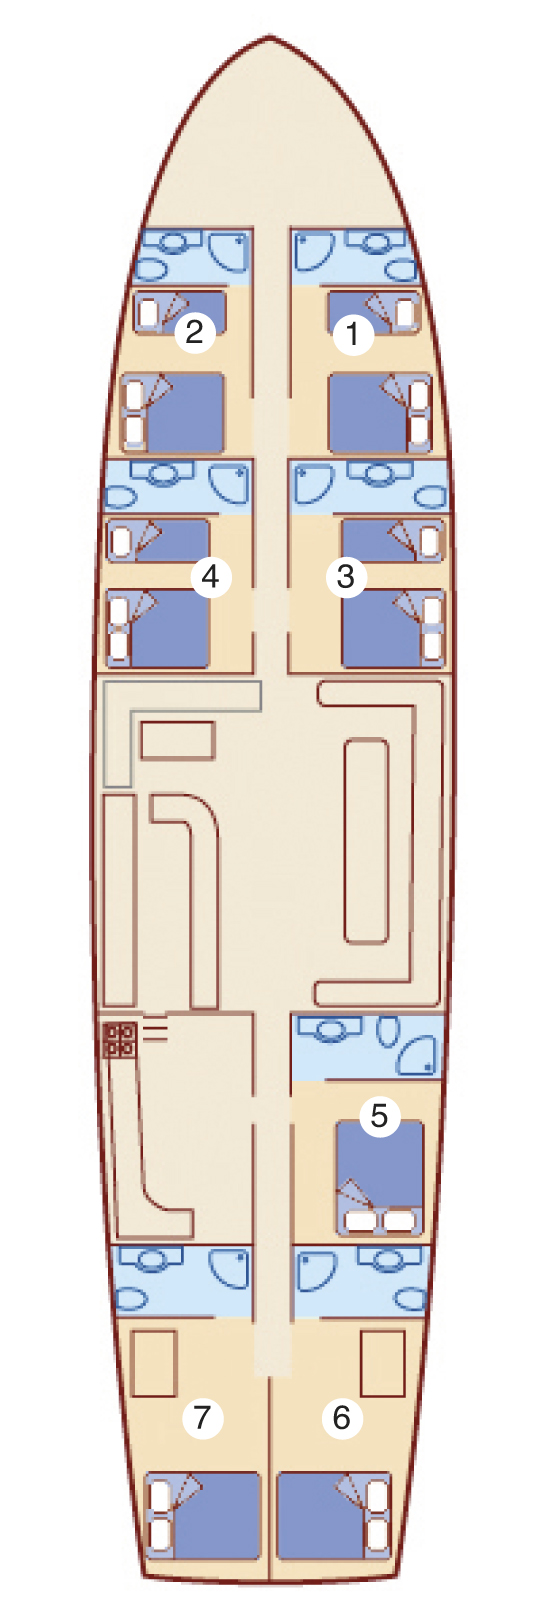 Sunworld-VI-layout.jpg